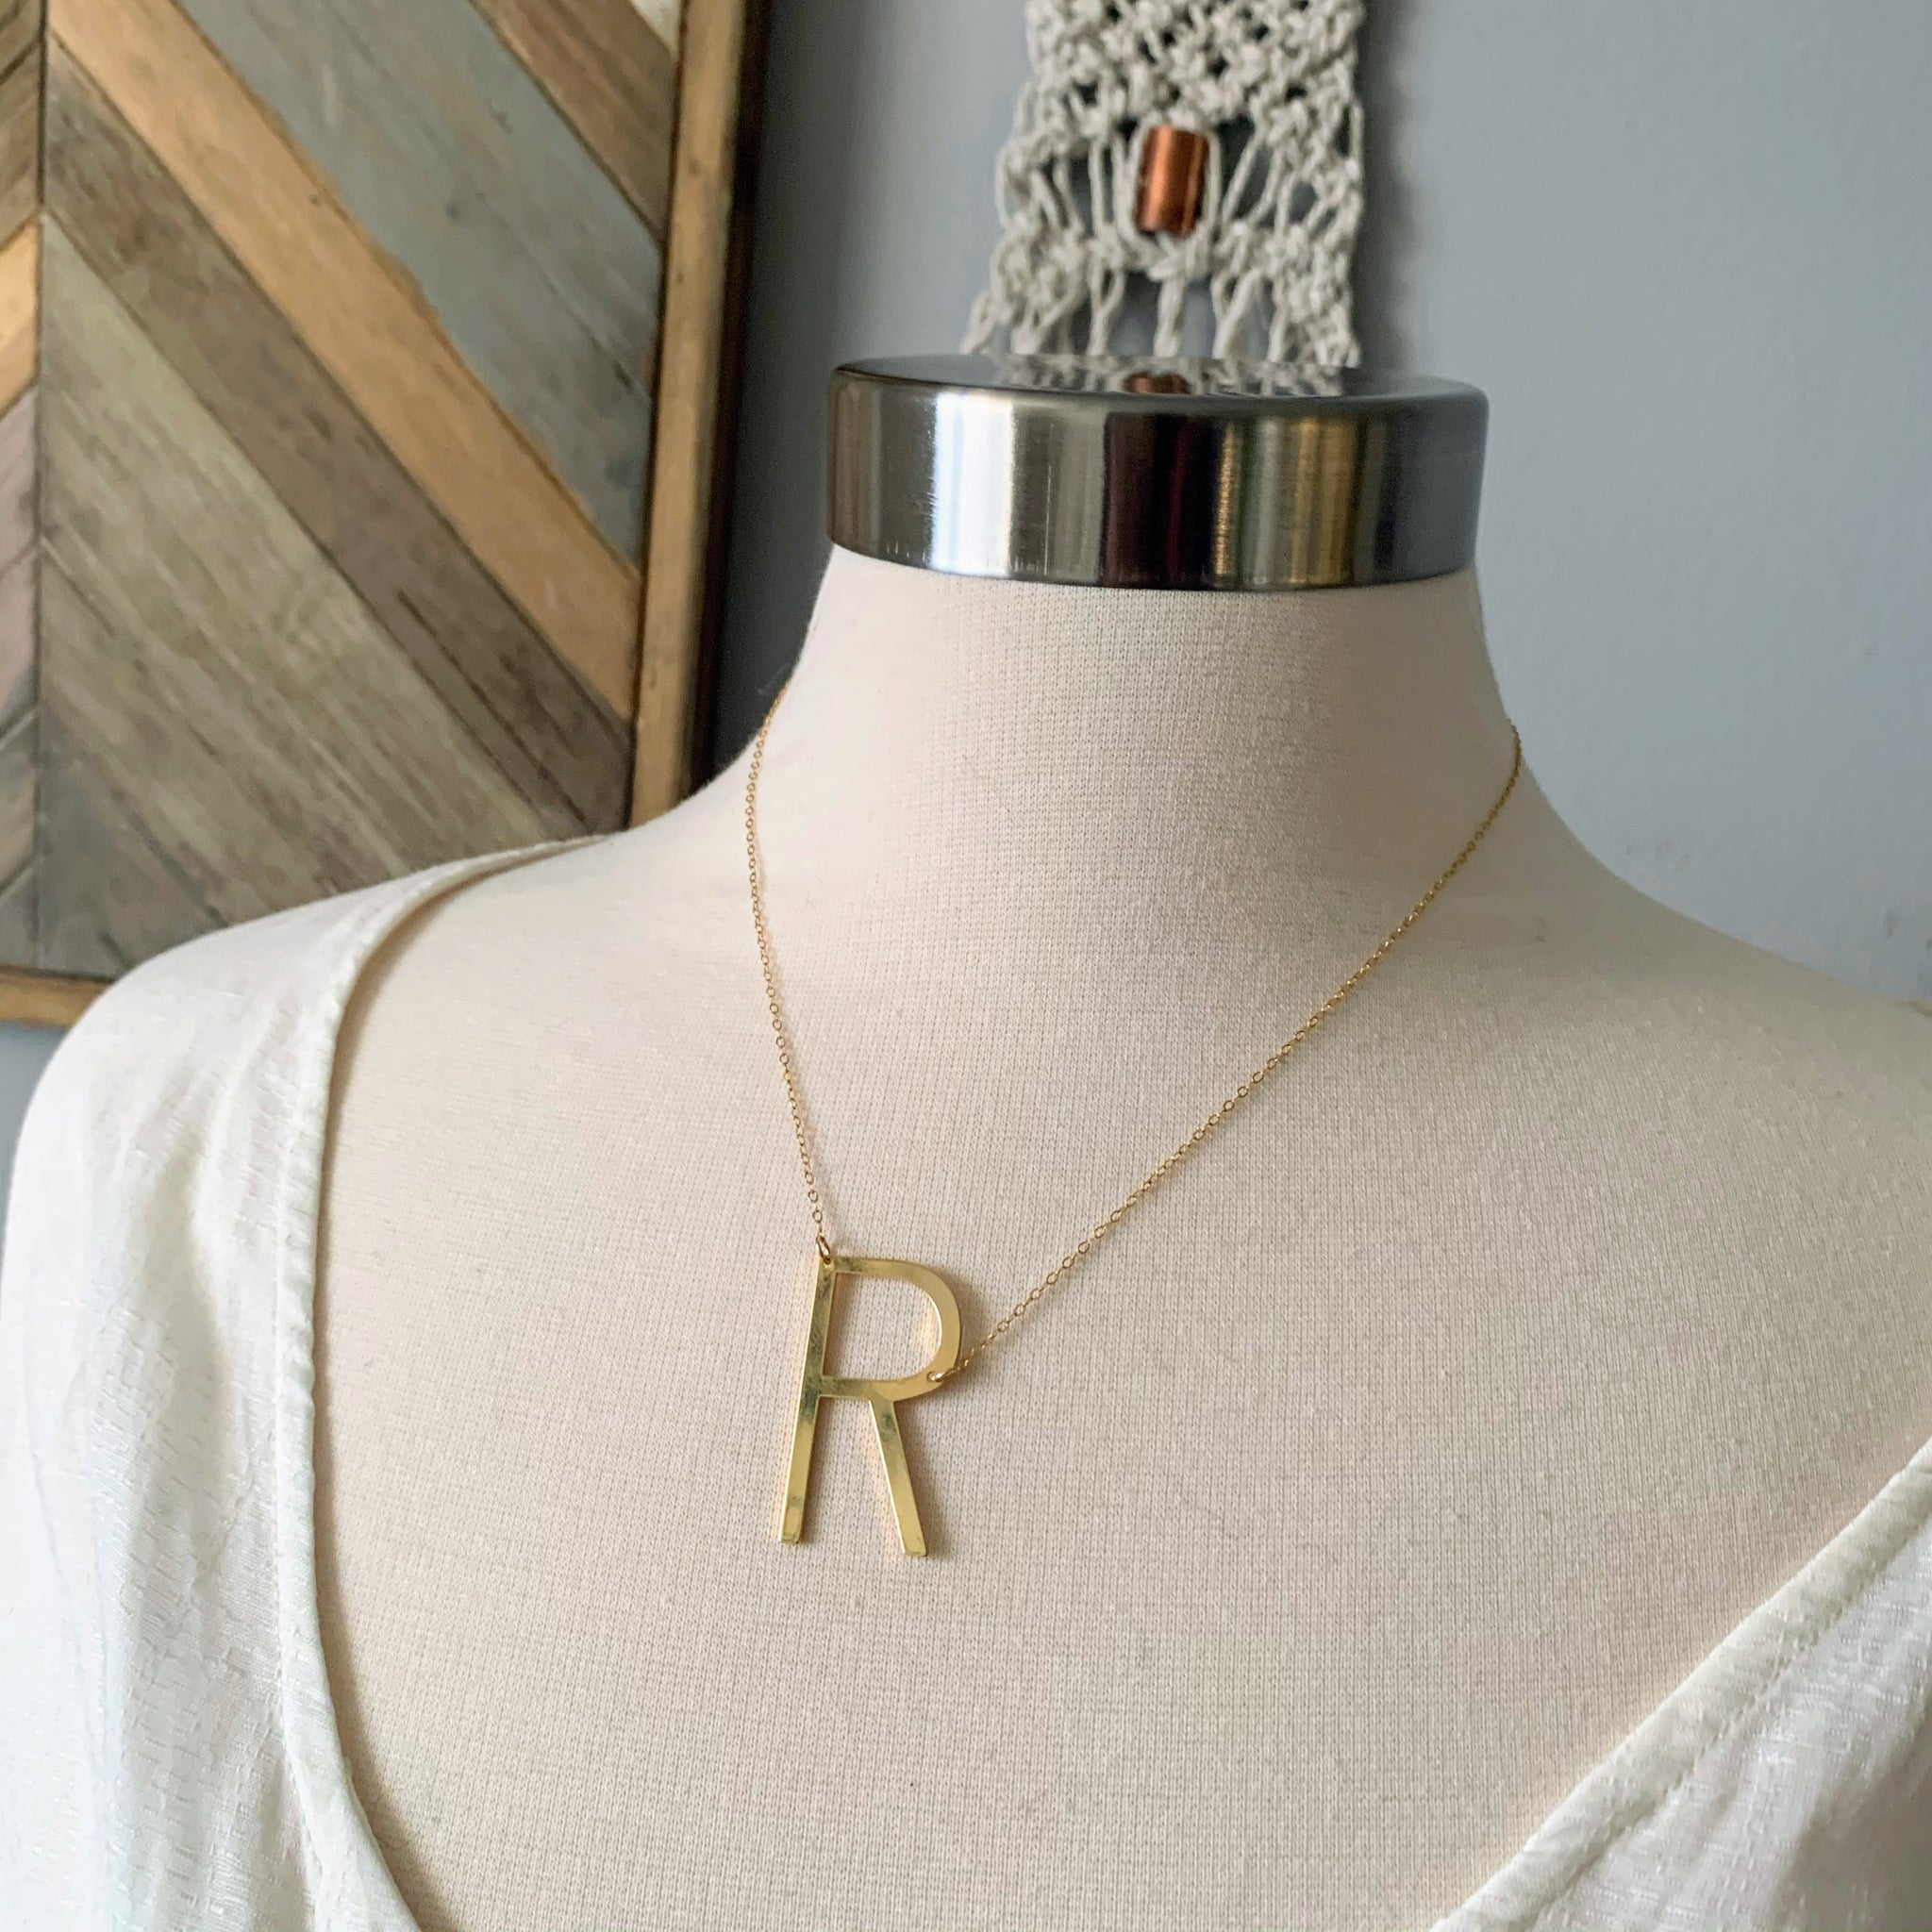 Sideways Initial Letter Necklace